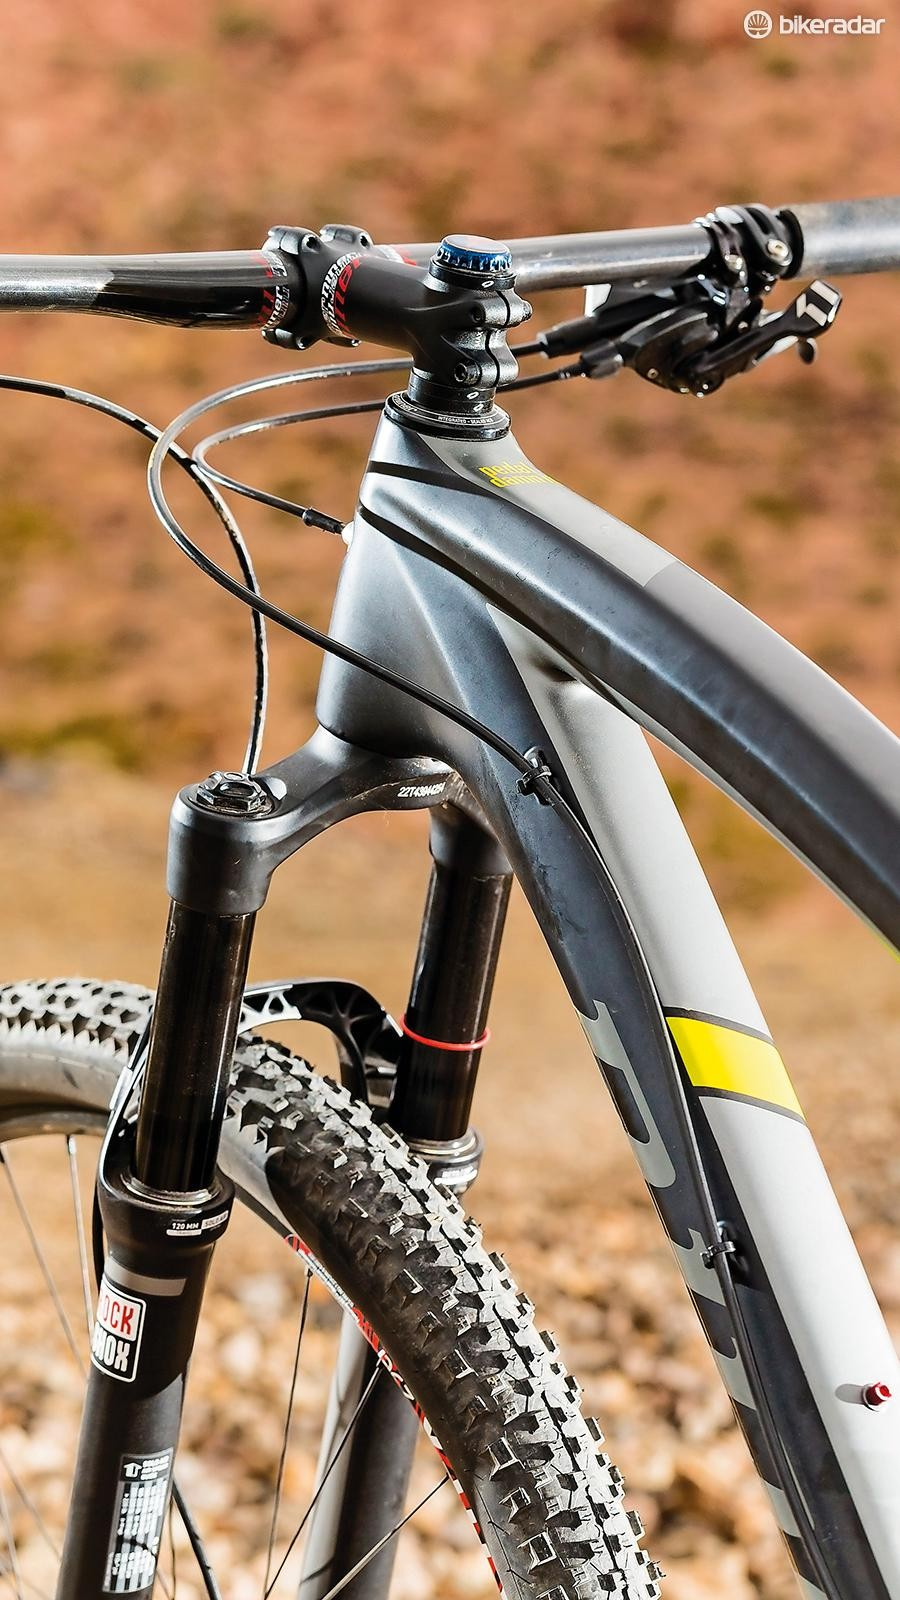 Don't let the Pike fork fool you, the RDO is about flat-out racing not trail cruising